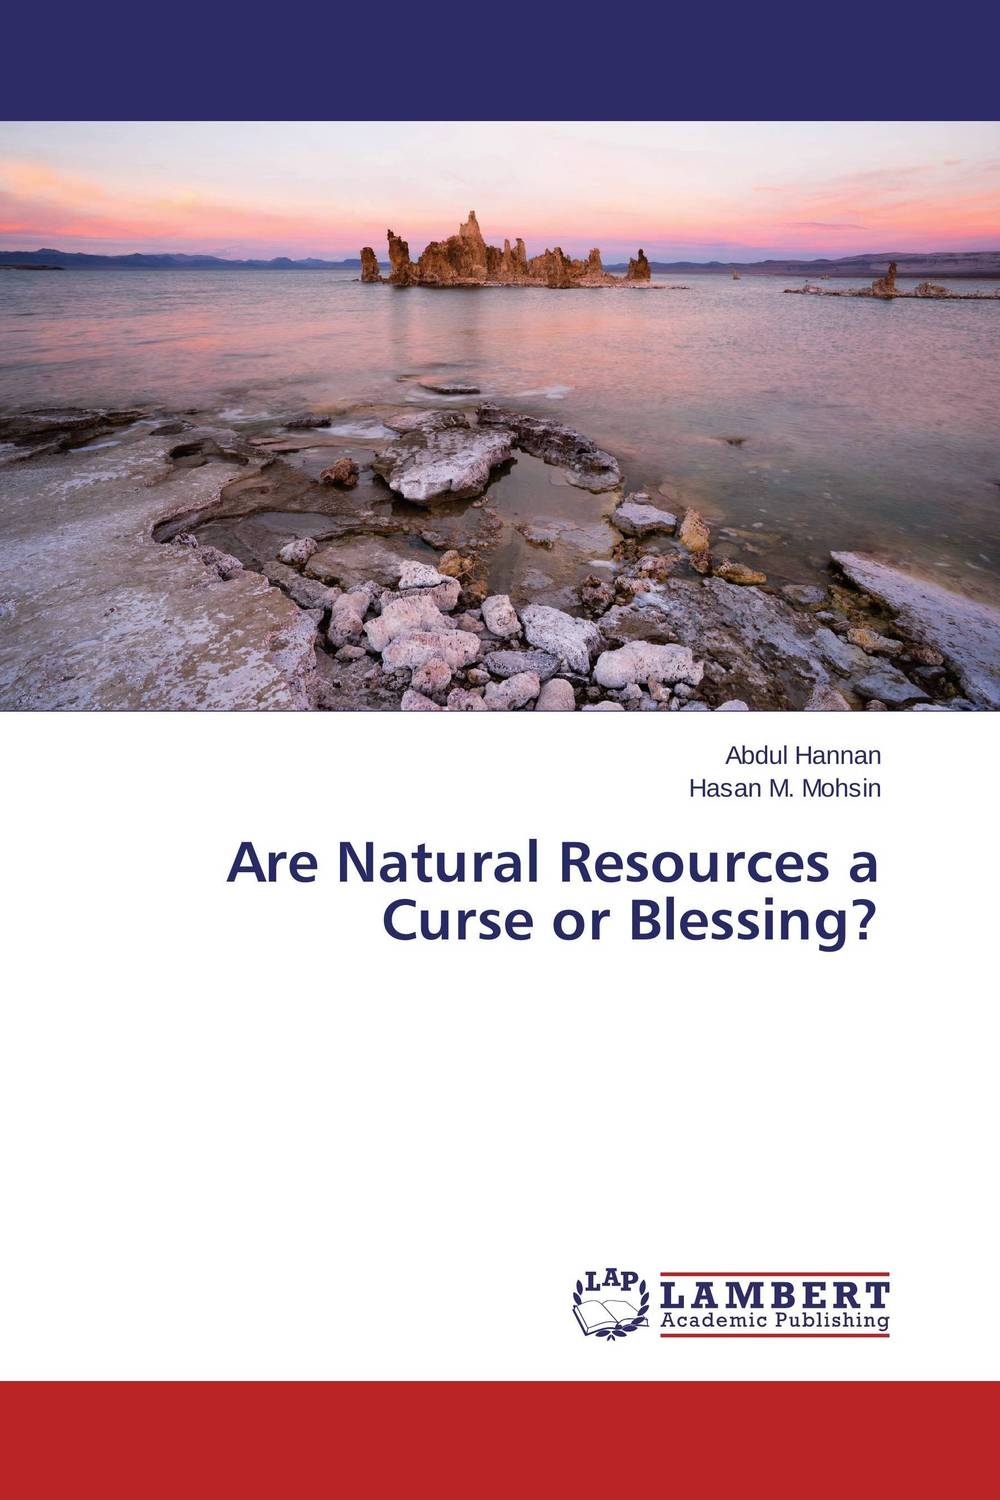 Are Natural Resources a Curse or Blessing? natural resource economics issues analysis and policy